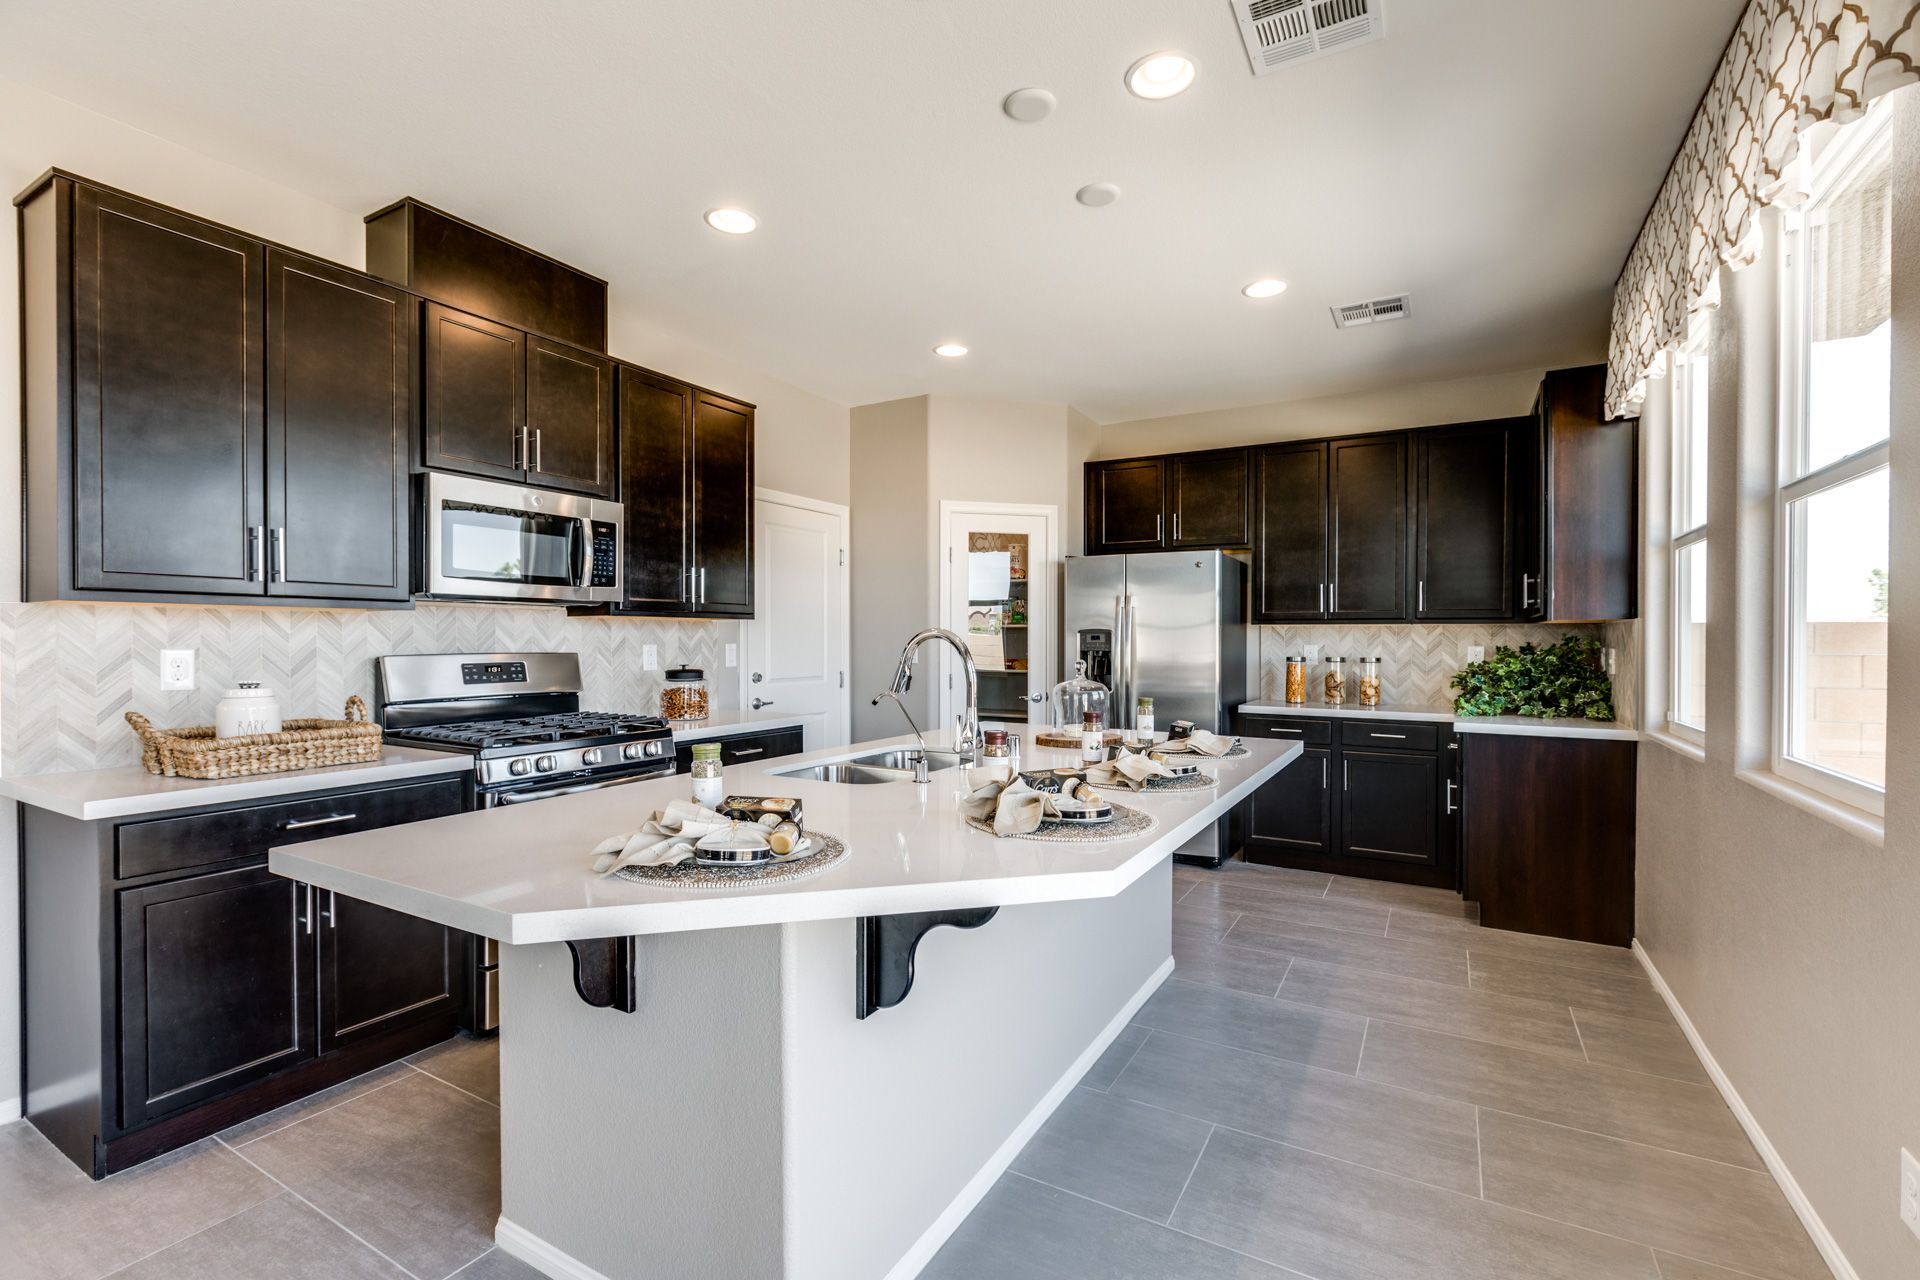 Kitchen featured in the Residence 2275 By Harmony Homes - Las Vegas in Las Vegas, NV